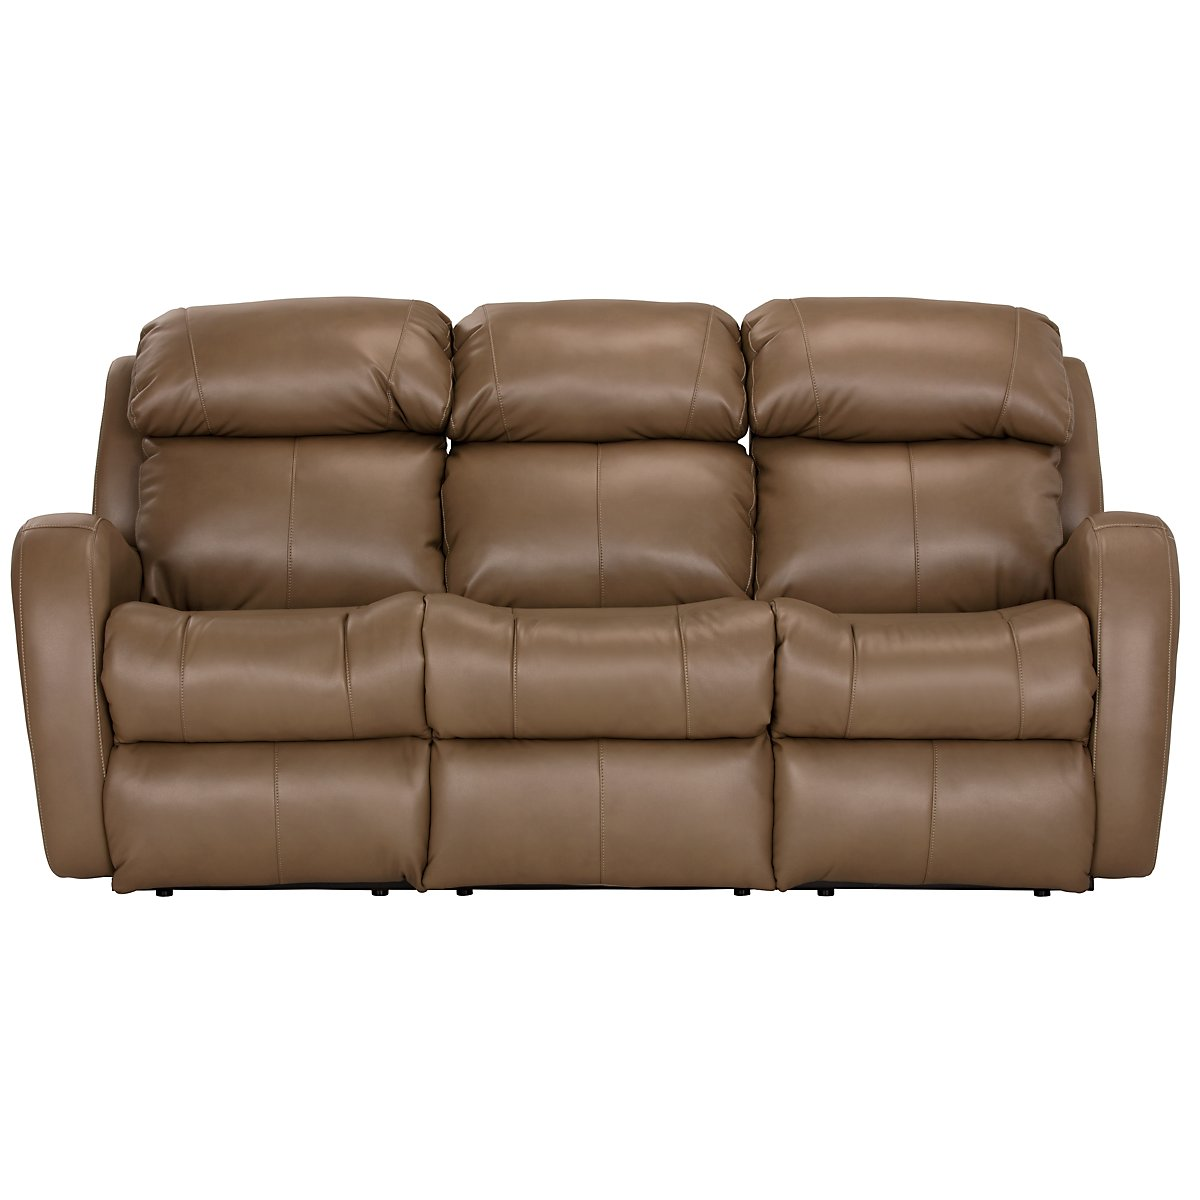 City Furniture Finn Brown Microfiber Power Reclining Sofa